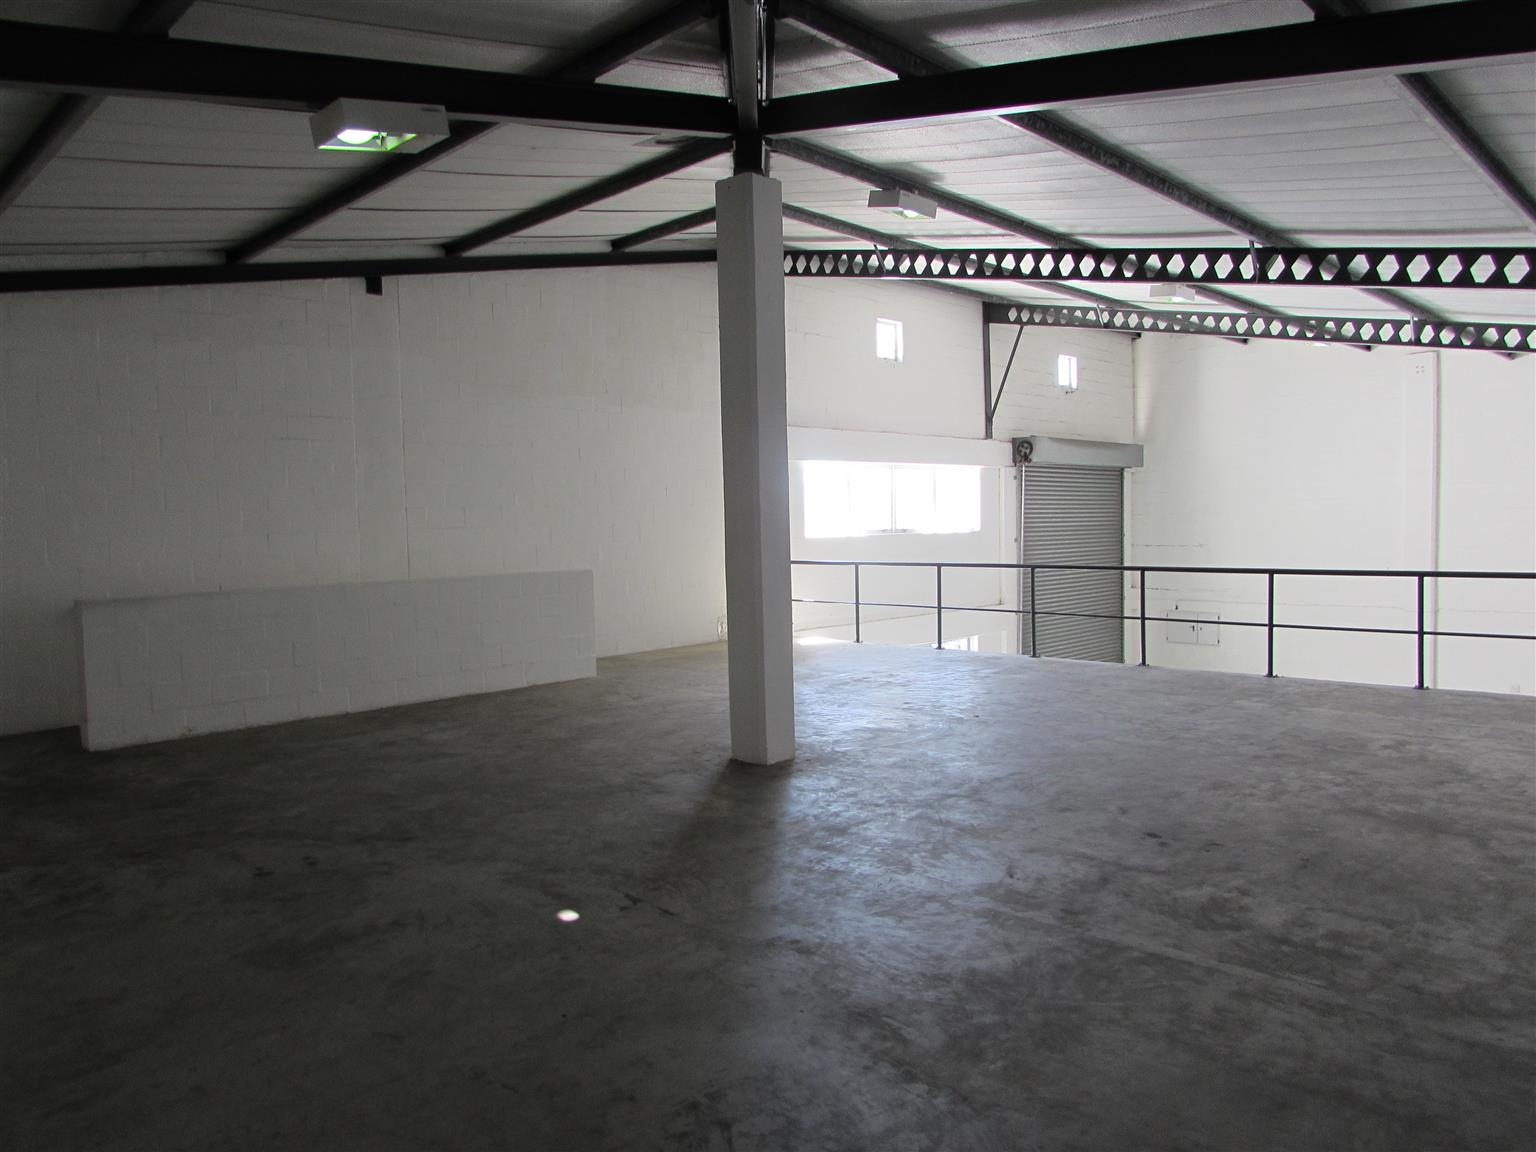 MONTAGUE GARDENS: 294m2 Warehouse To Let